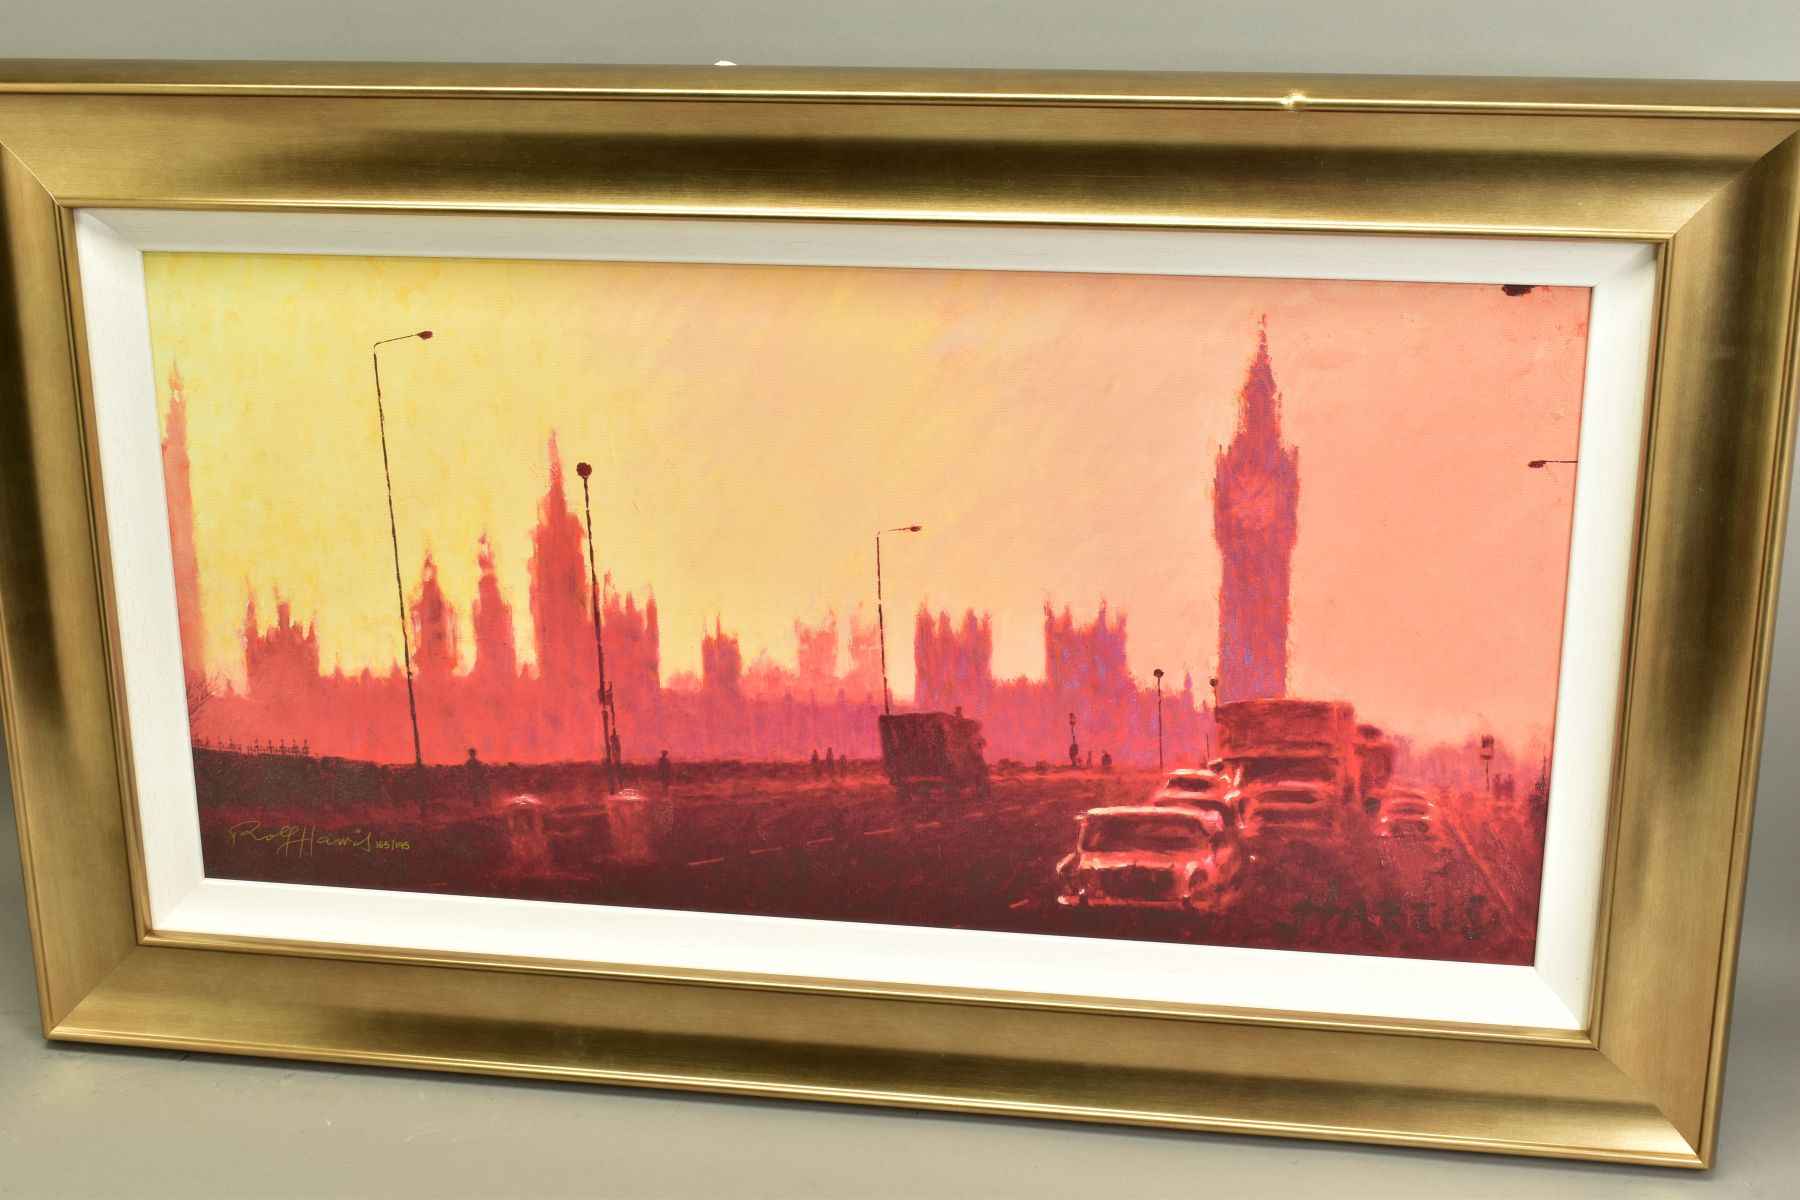 ROLF HARRIS (AUSTRALIAN 1930), 'Fifties Rush Hour', a Limited Edition print of a London skyline, - Image 4 of 6